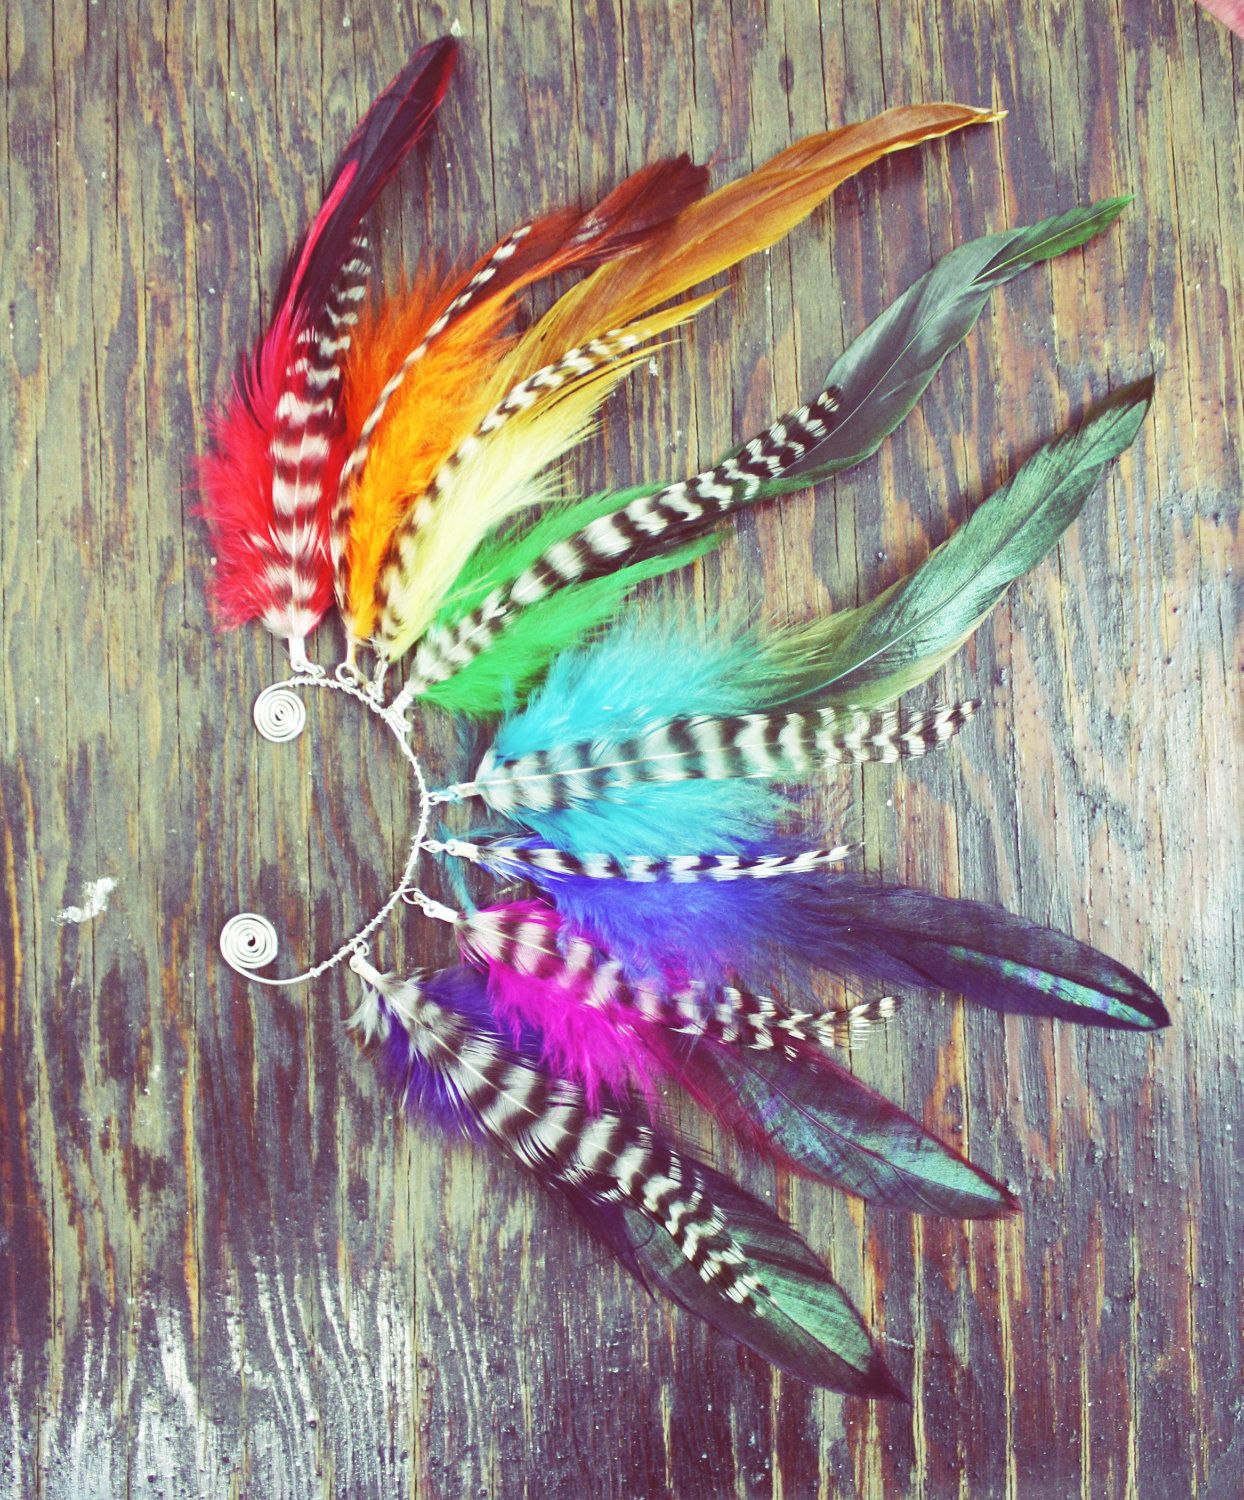 Elf painted metal with rainbow feathers